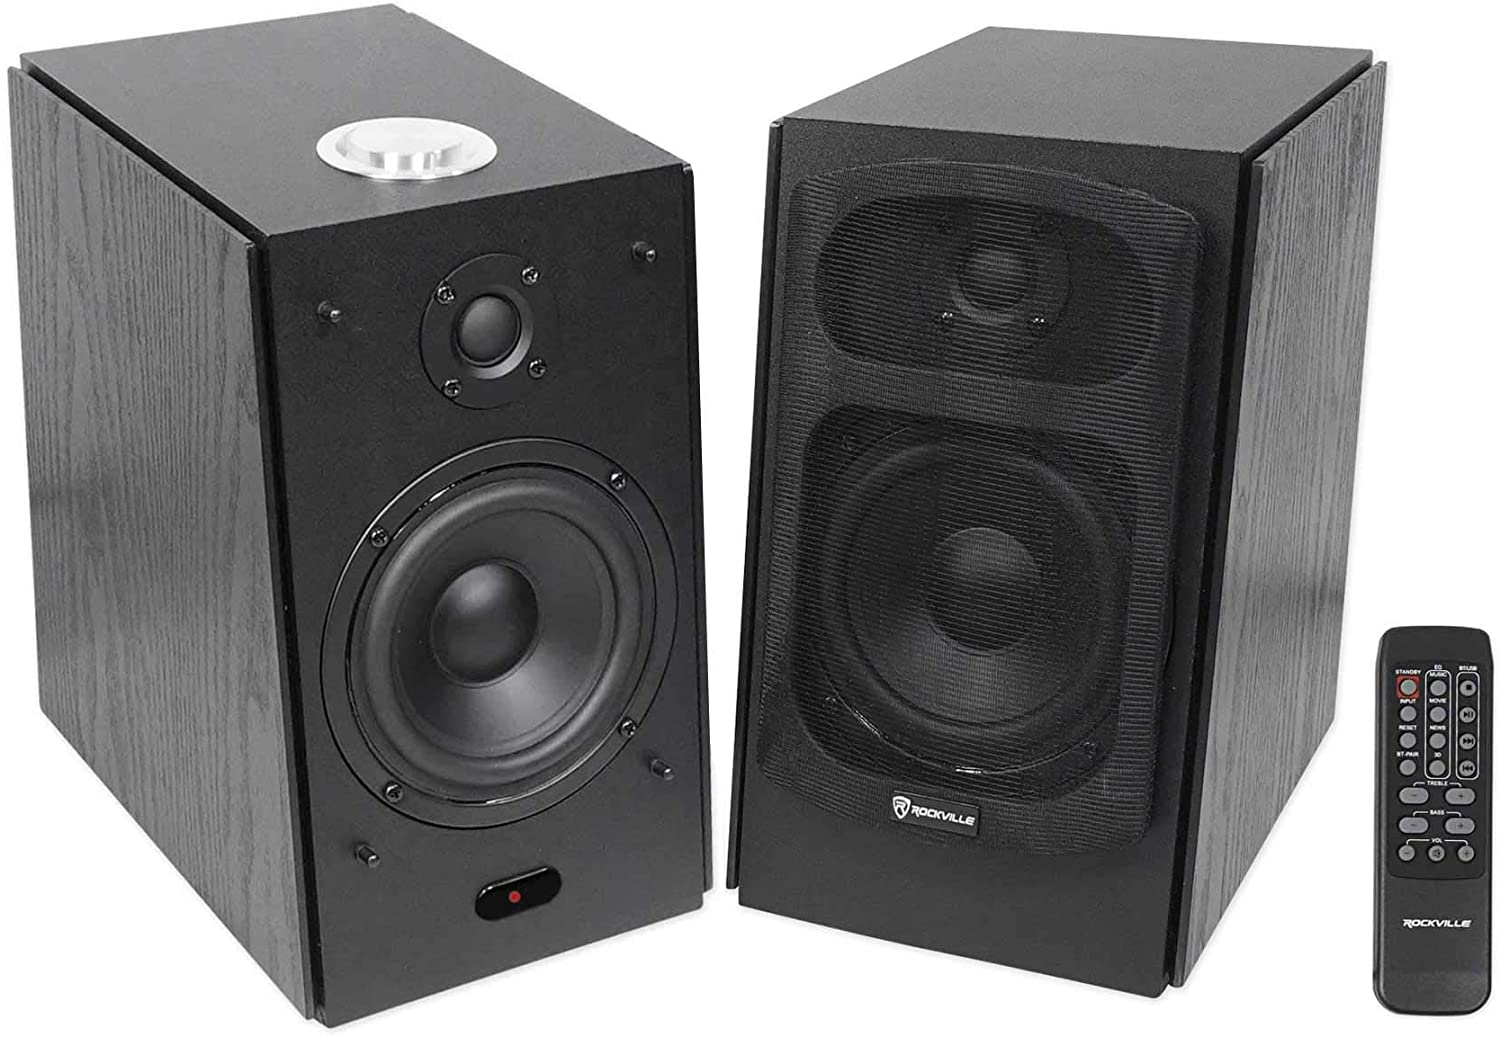 (2) Speaker Home Theater System for LG UK6090PUA Television TV - in Black